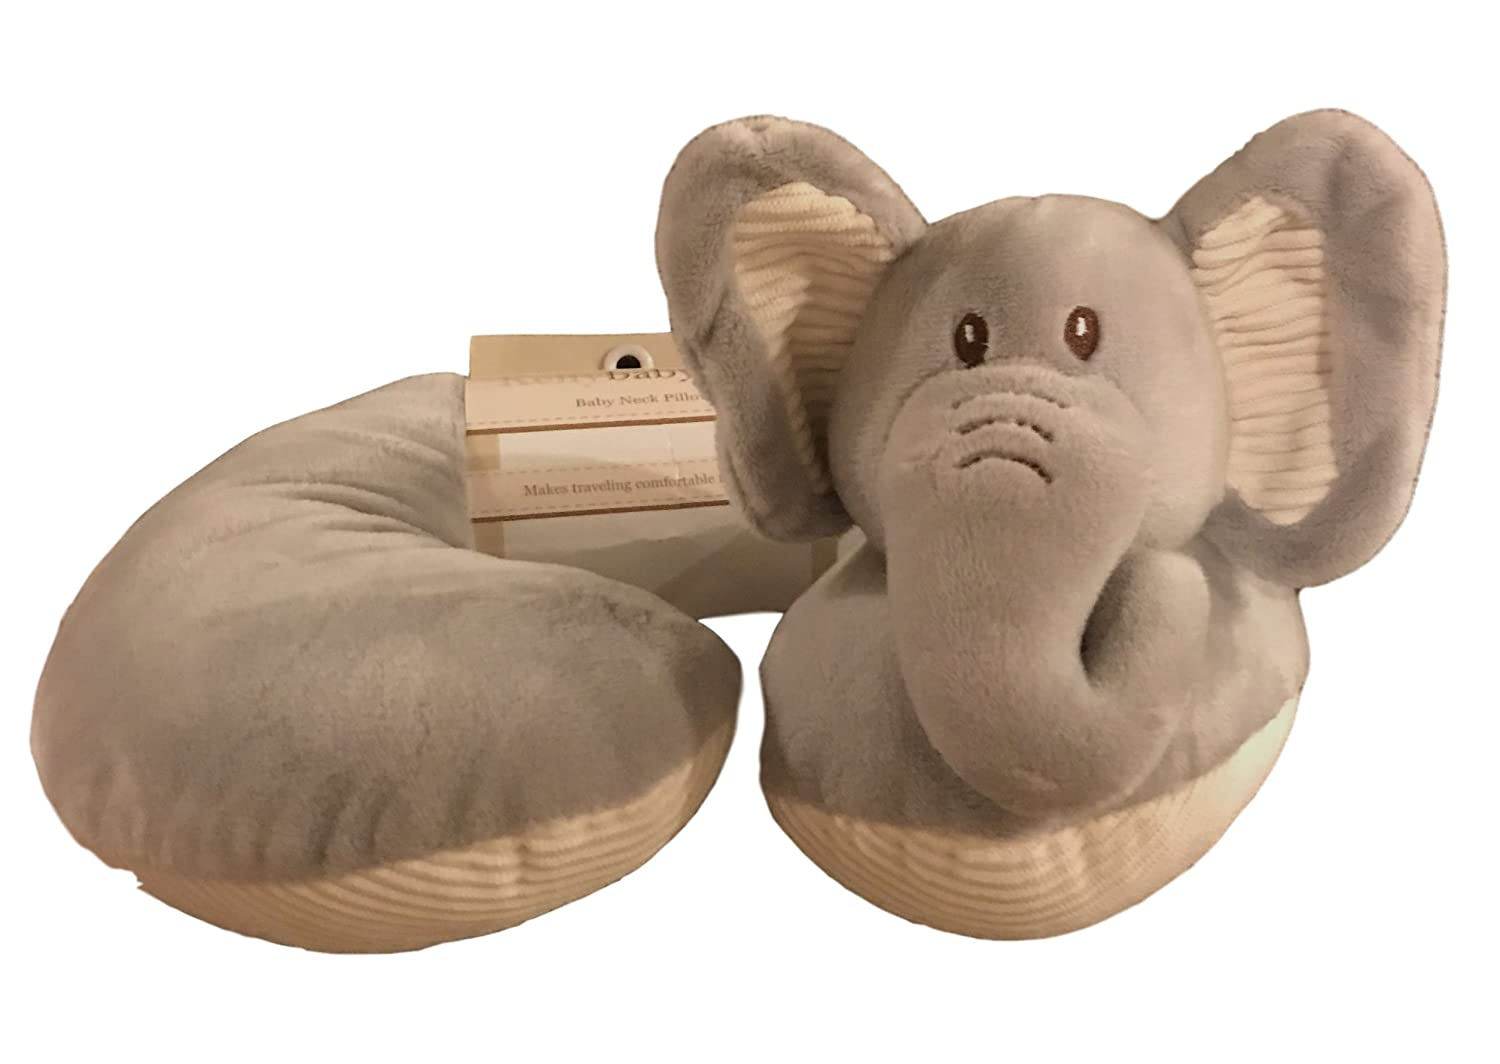 Elephant Baby Head and Neck Support Pillow for traveling and comfort by Kellybaby Kellytoys